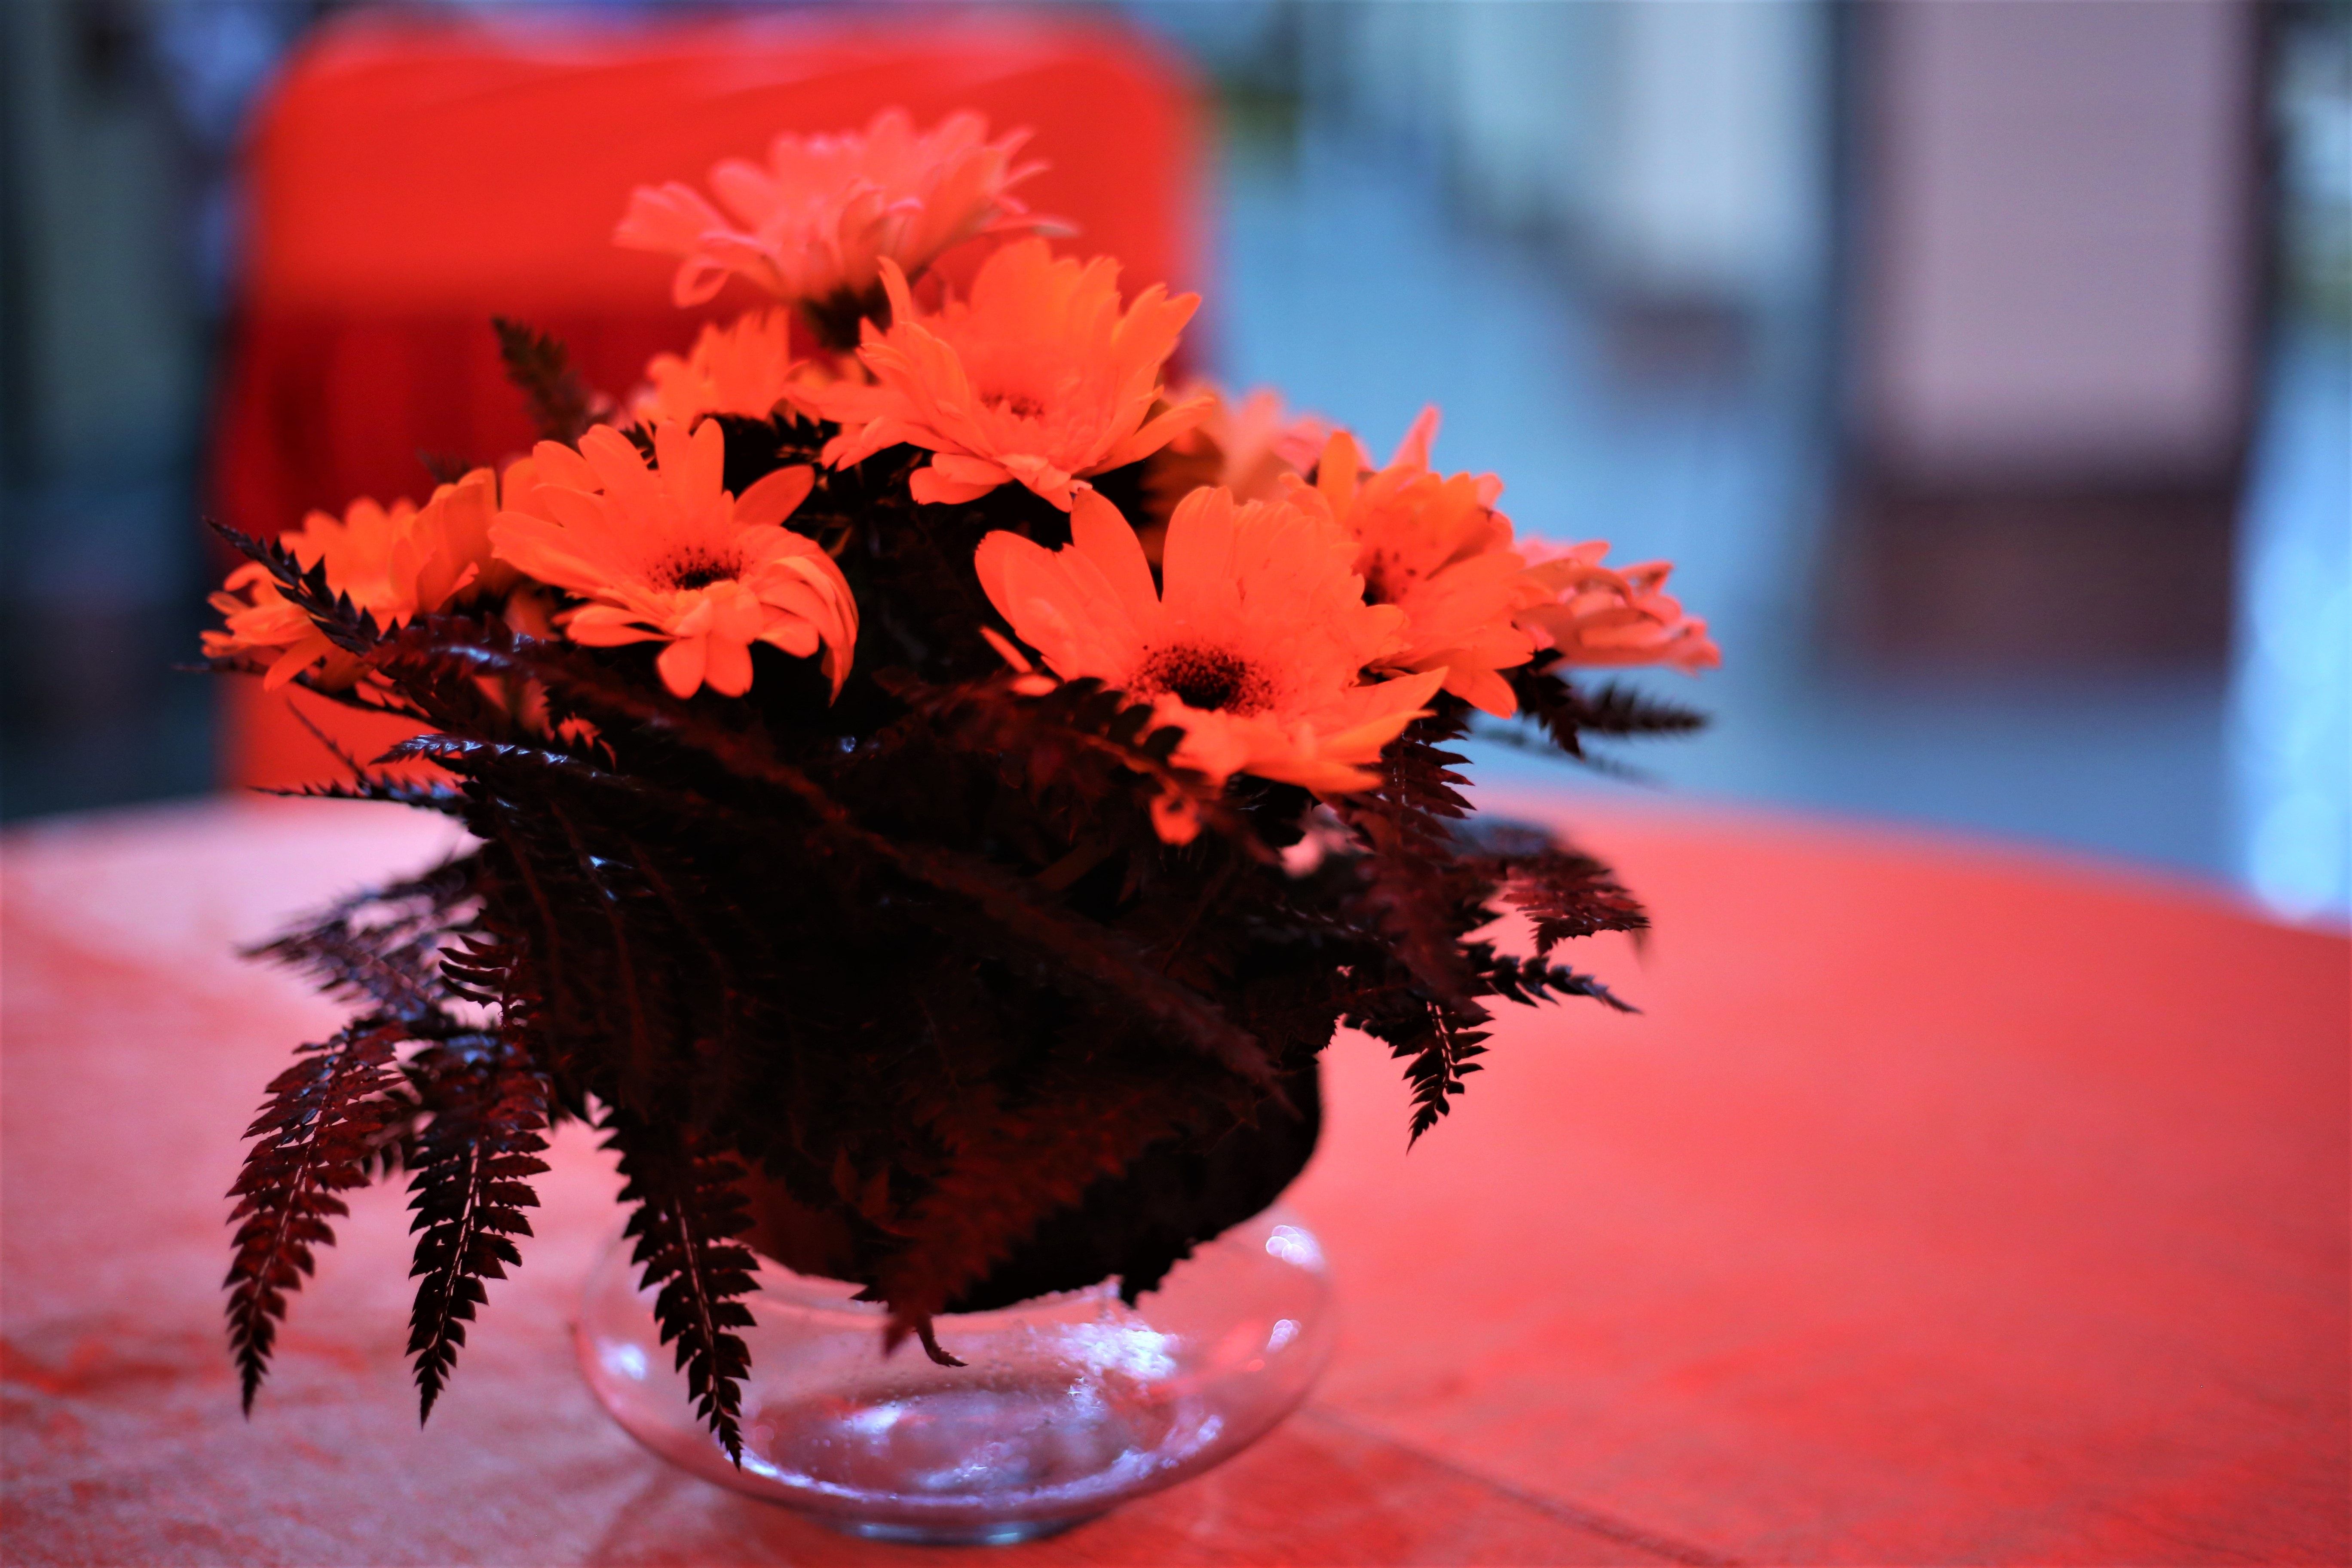 Free stock photo of beautiful flowers, FLOWER ON TABLE, flowers